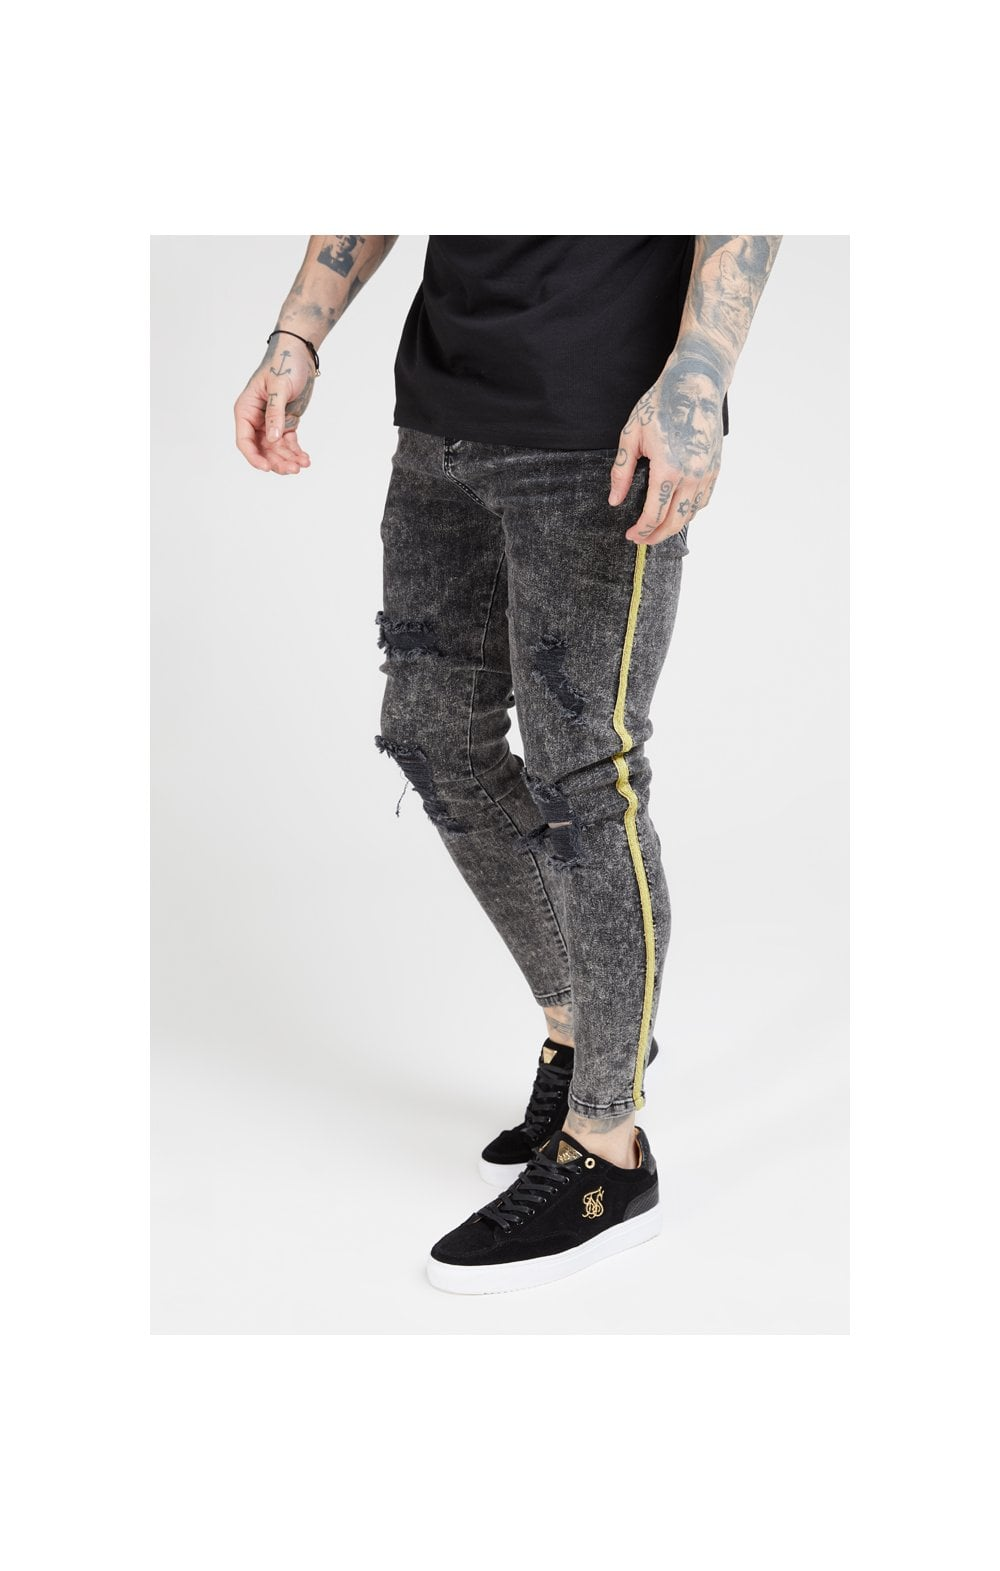 SikSilk Distressed Skinny Taped Denims - Faded Grey (1)